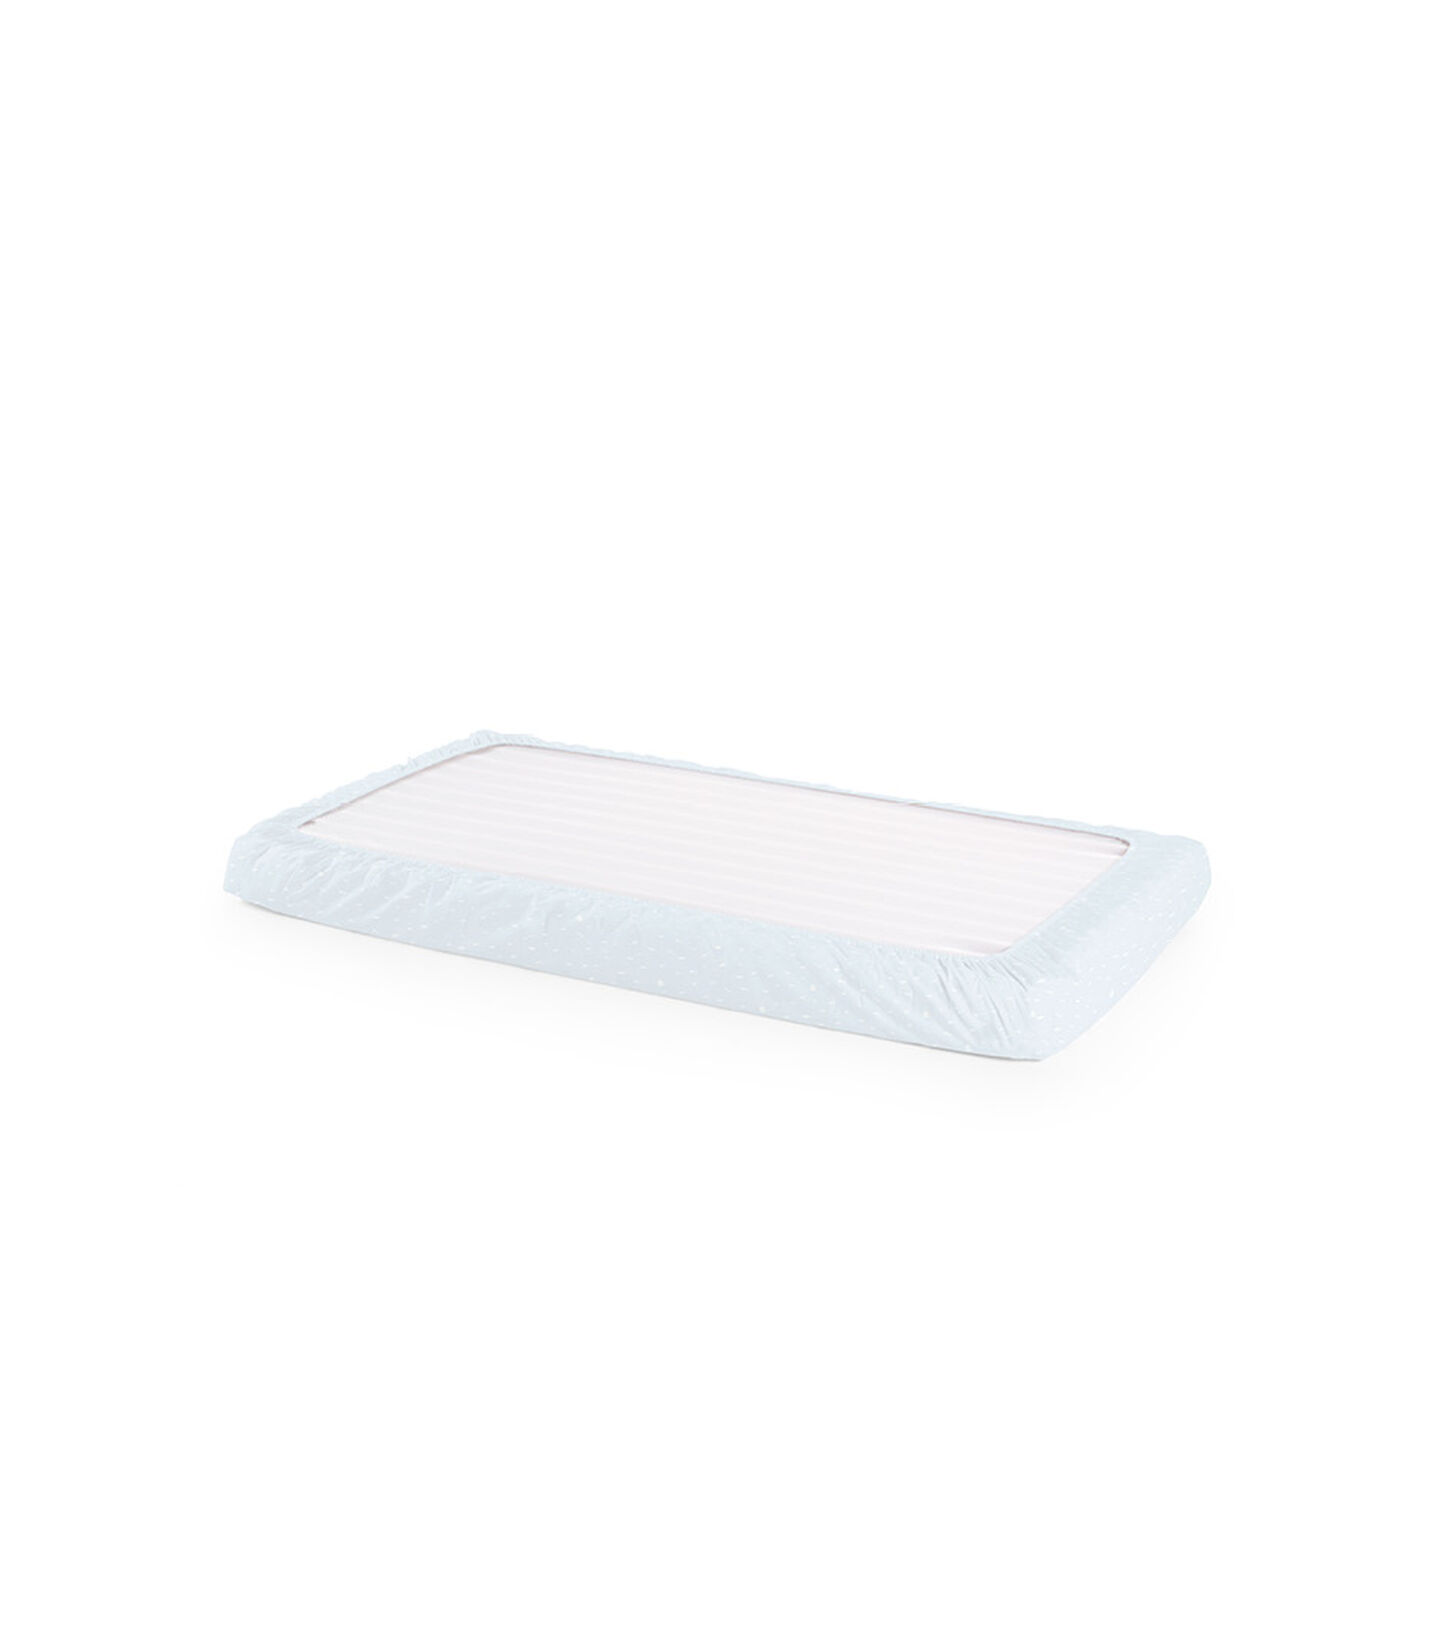 Stokke® Home™ Bed Fit Sheet Blue Sea, Blue Sea, mainview view 2